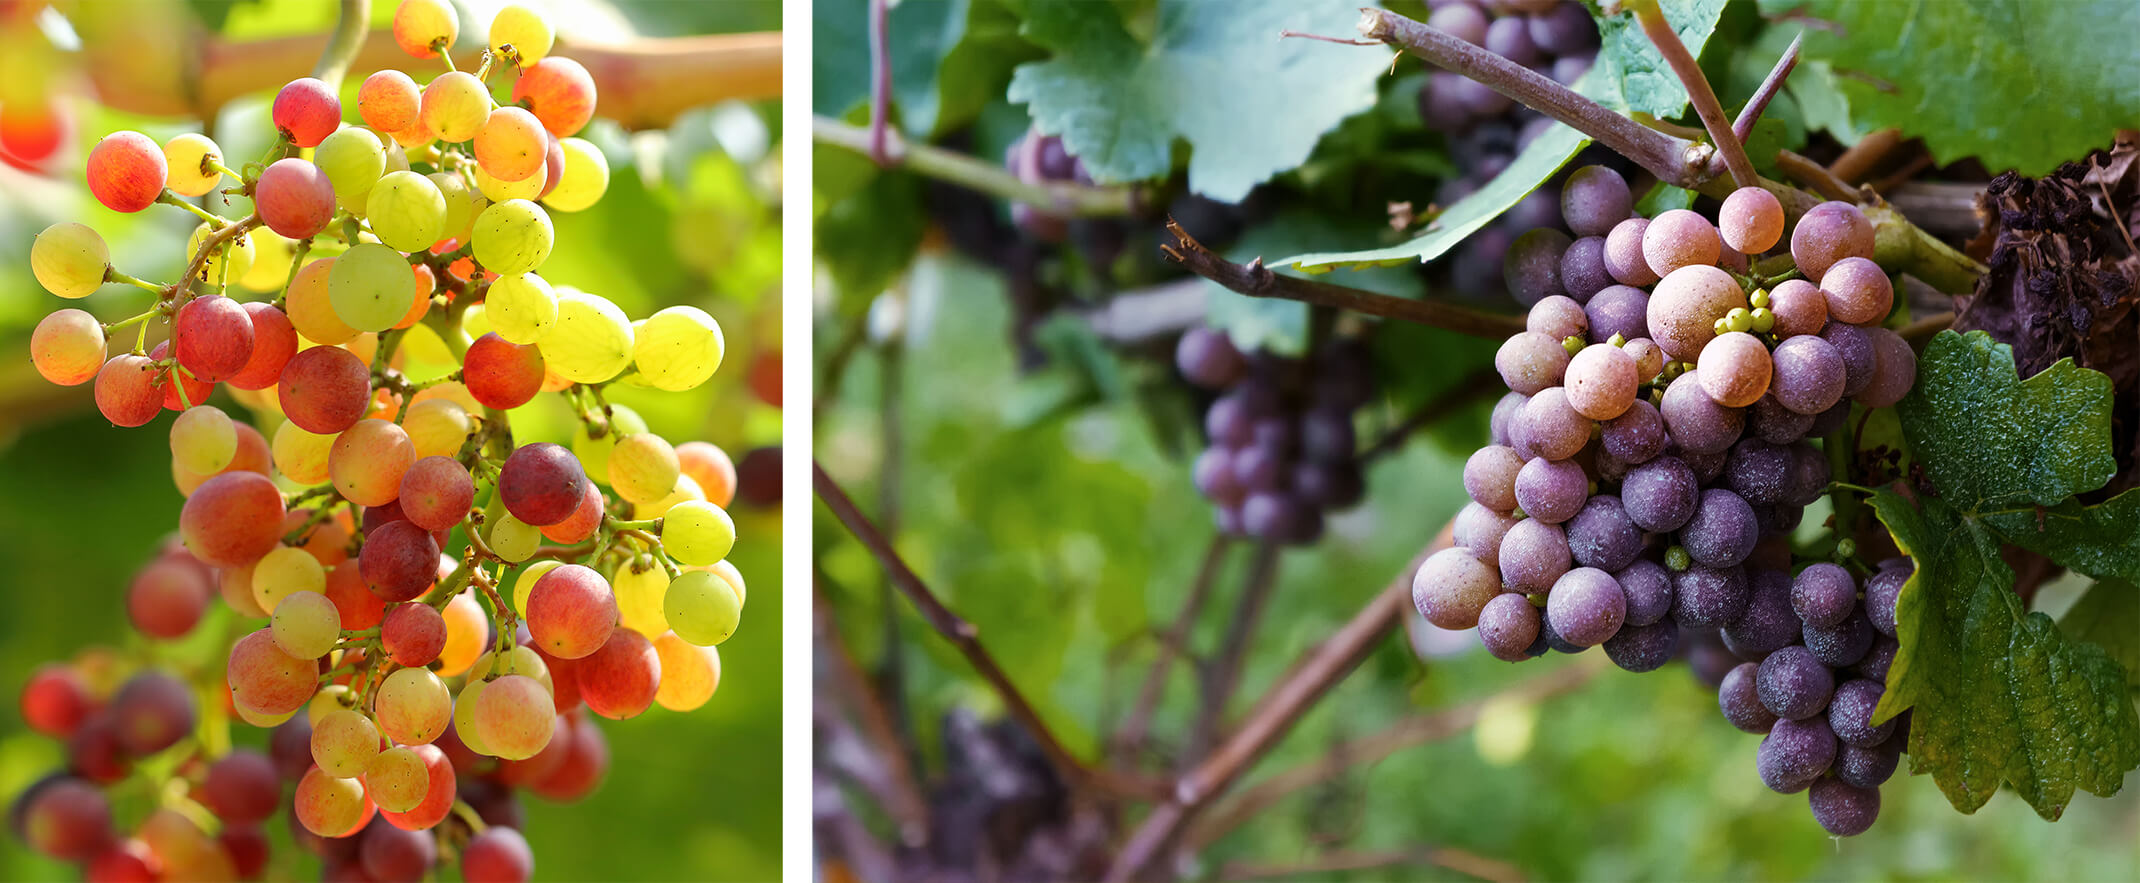 2 images: a closeup of ripening red grapes, and a closeup of purple grapes ripening on the vine